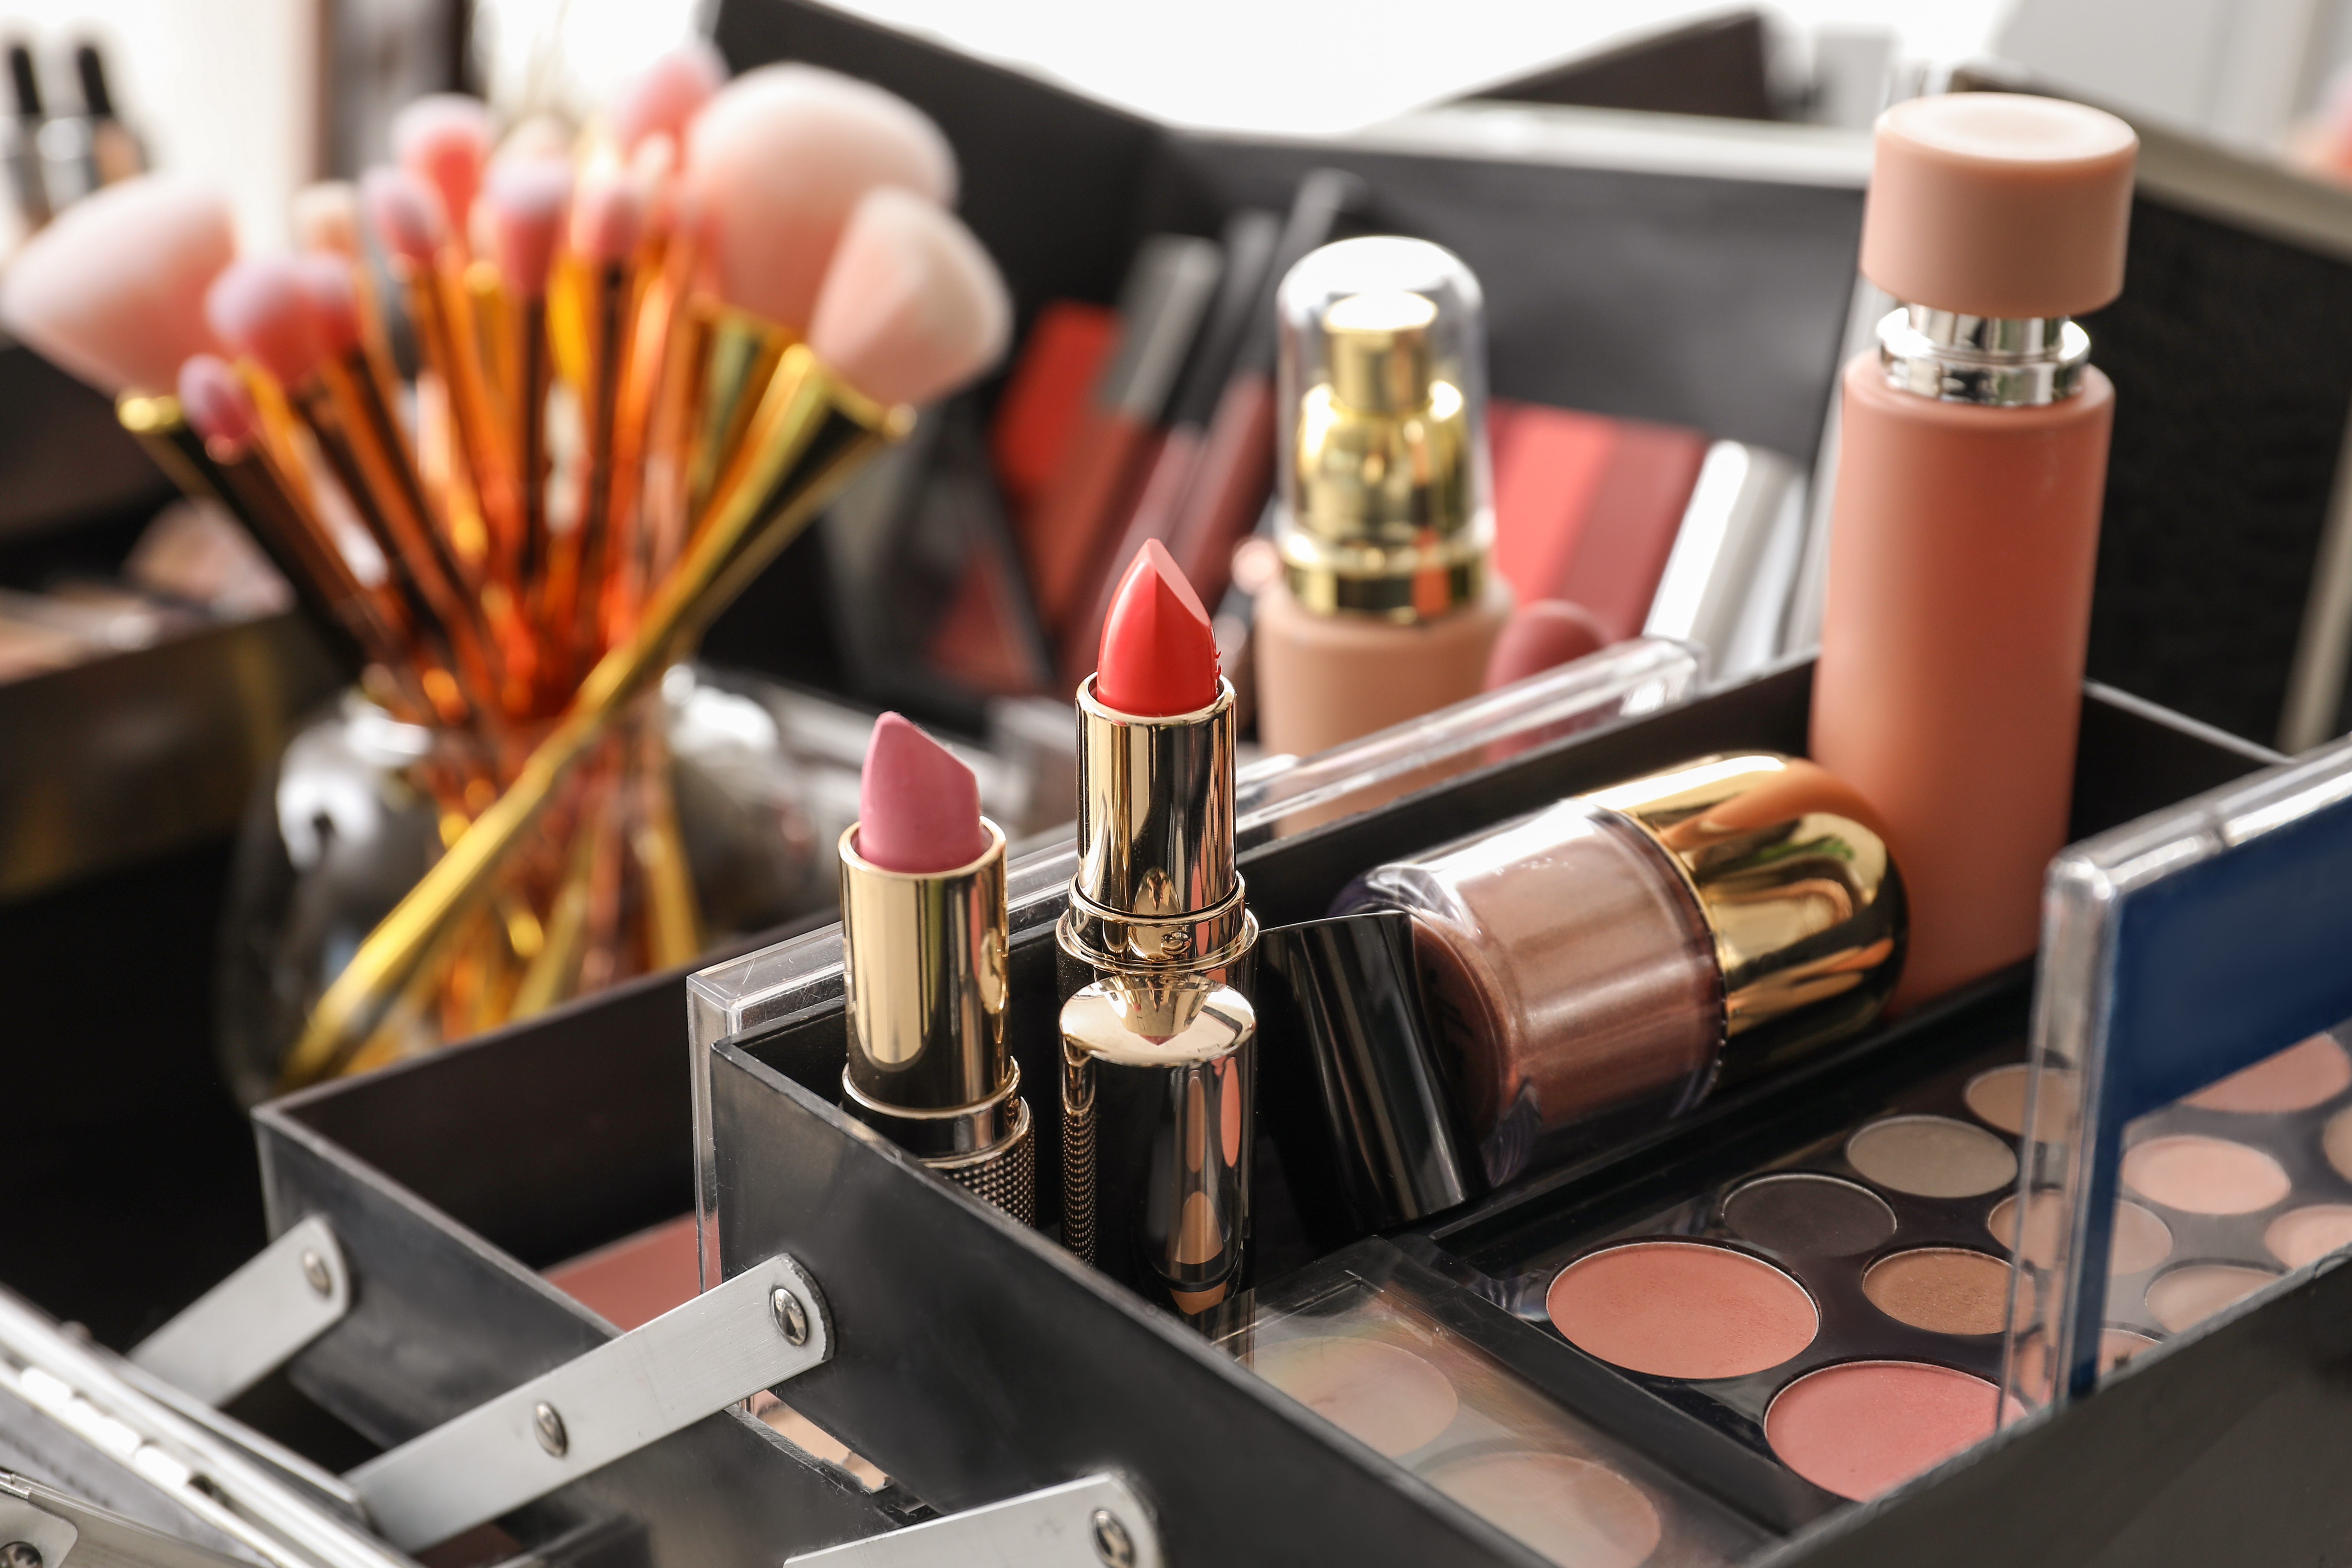 Beauty Cart Organizers to Stow & Display Your Collection